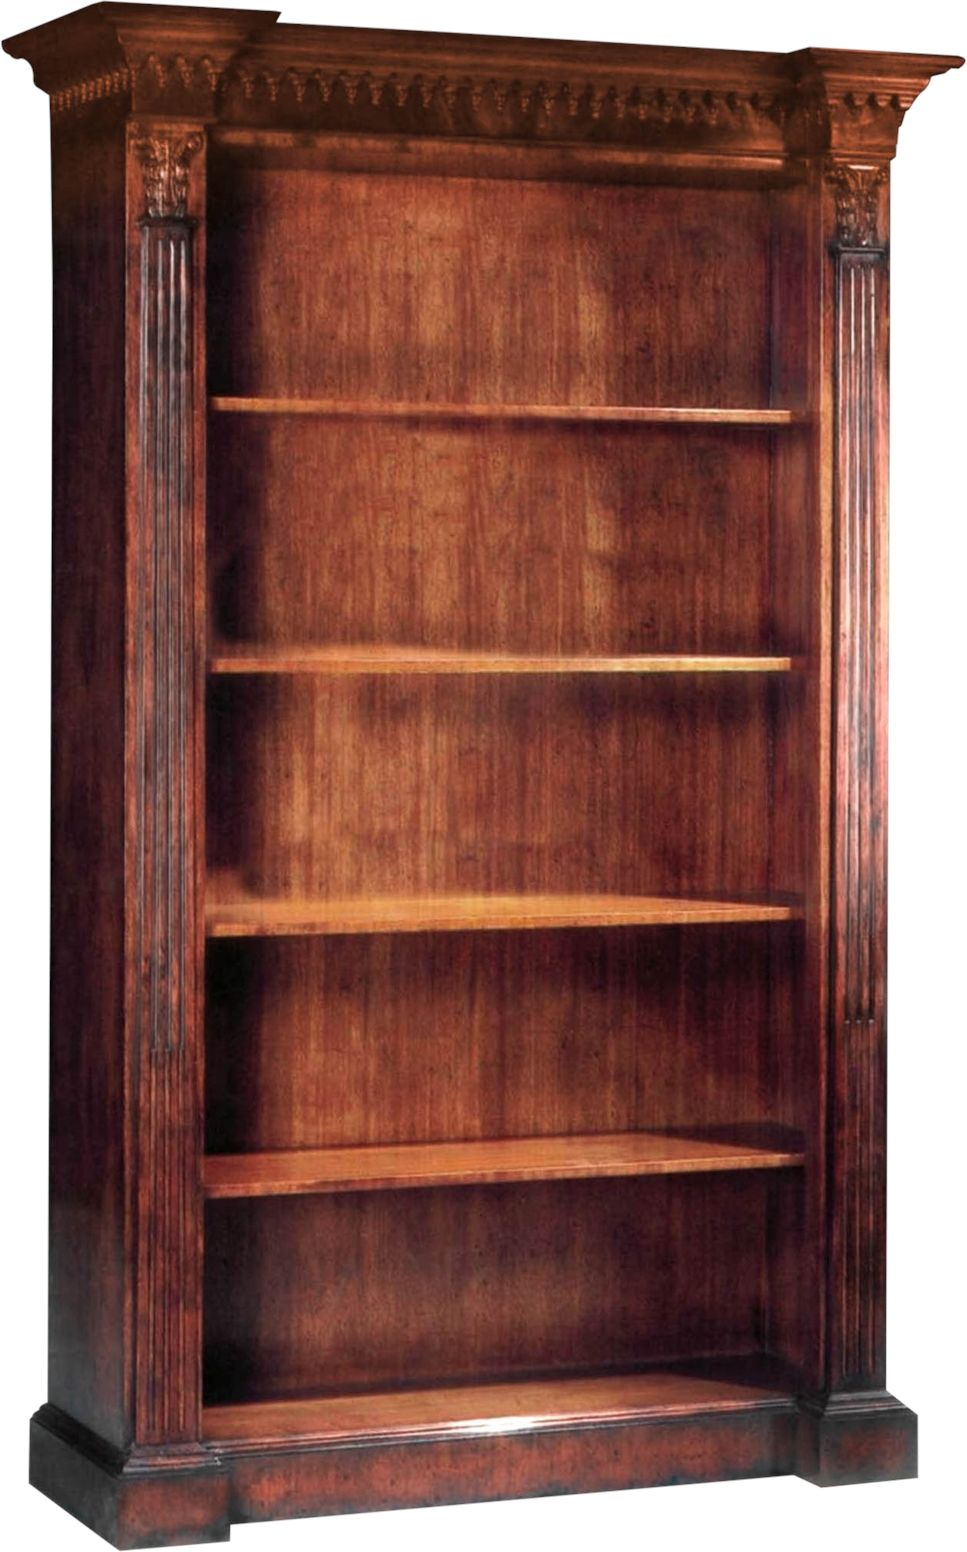 Scarborough House Bookcase Traditional Style Carved 5 Shelves Furniture Bookcase Oldworldeuropean Antique Bookcase Bookcase Shelves